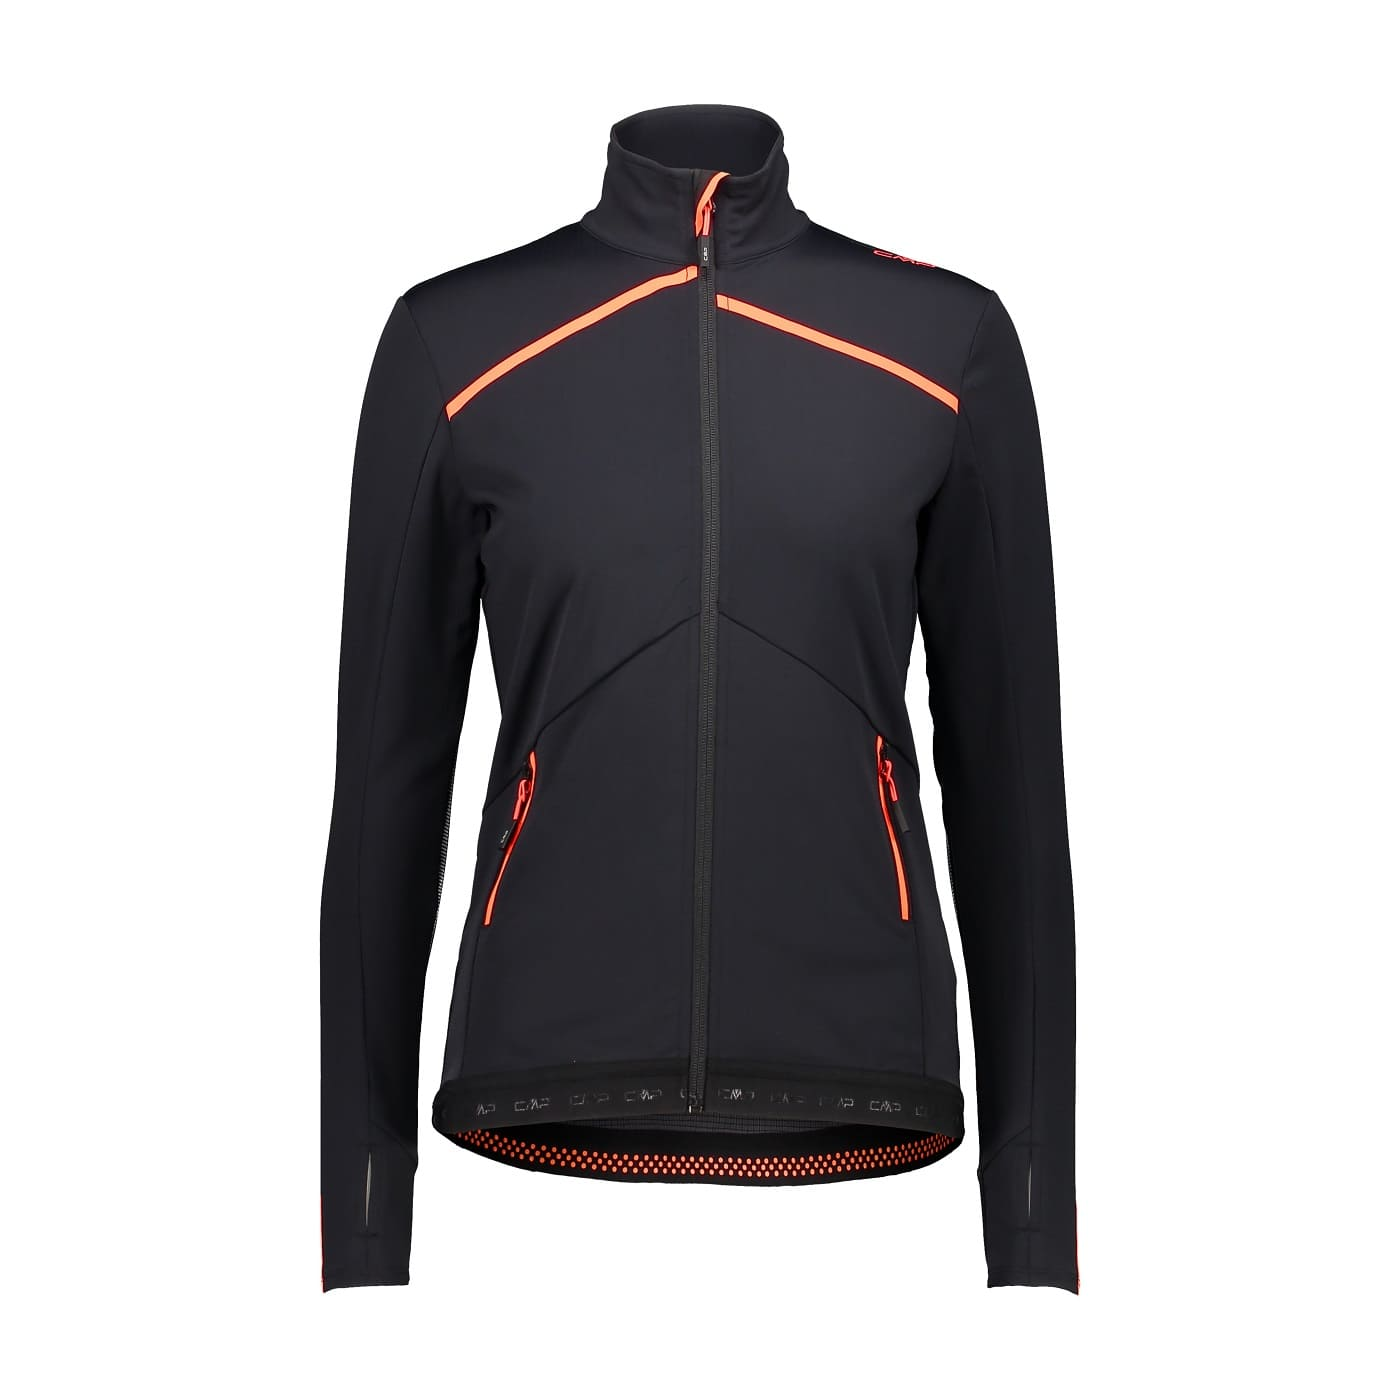 CMP WOMAN JACKET NERO-RED FLUO - 44/38